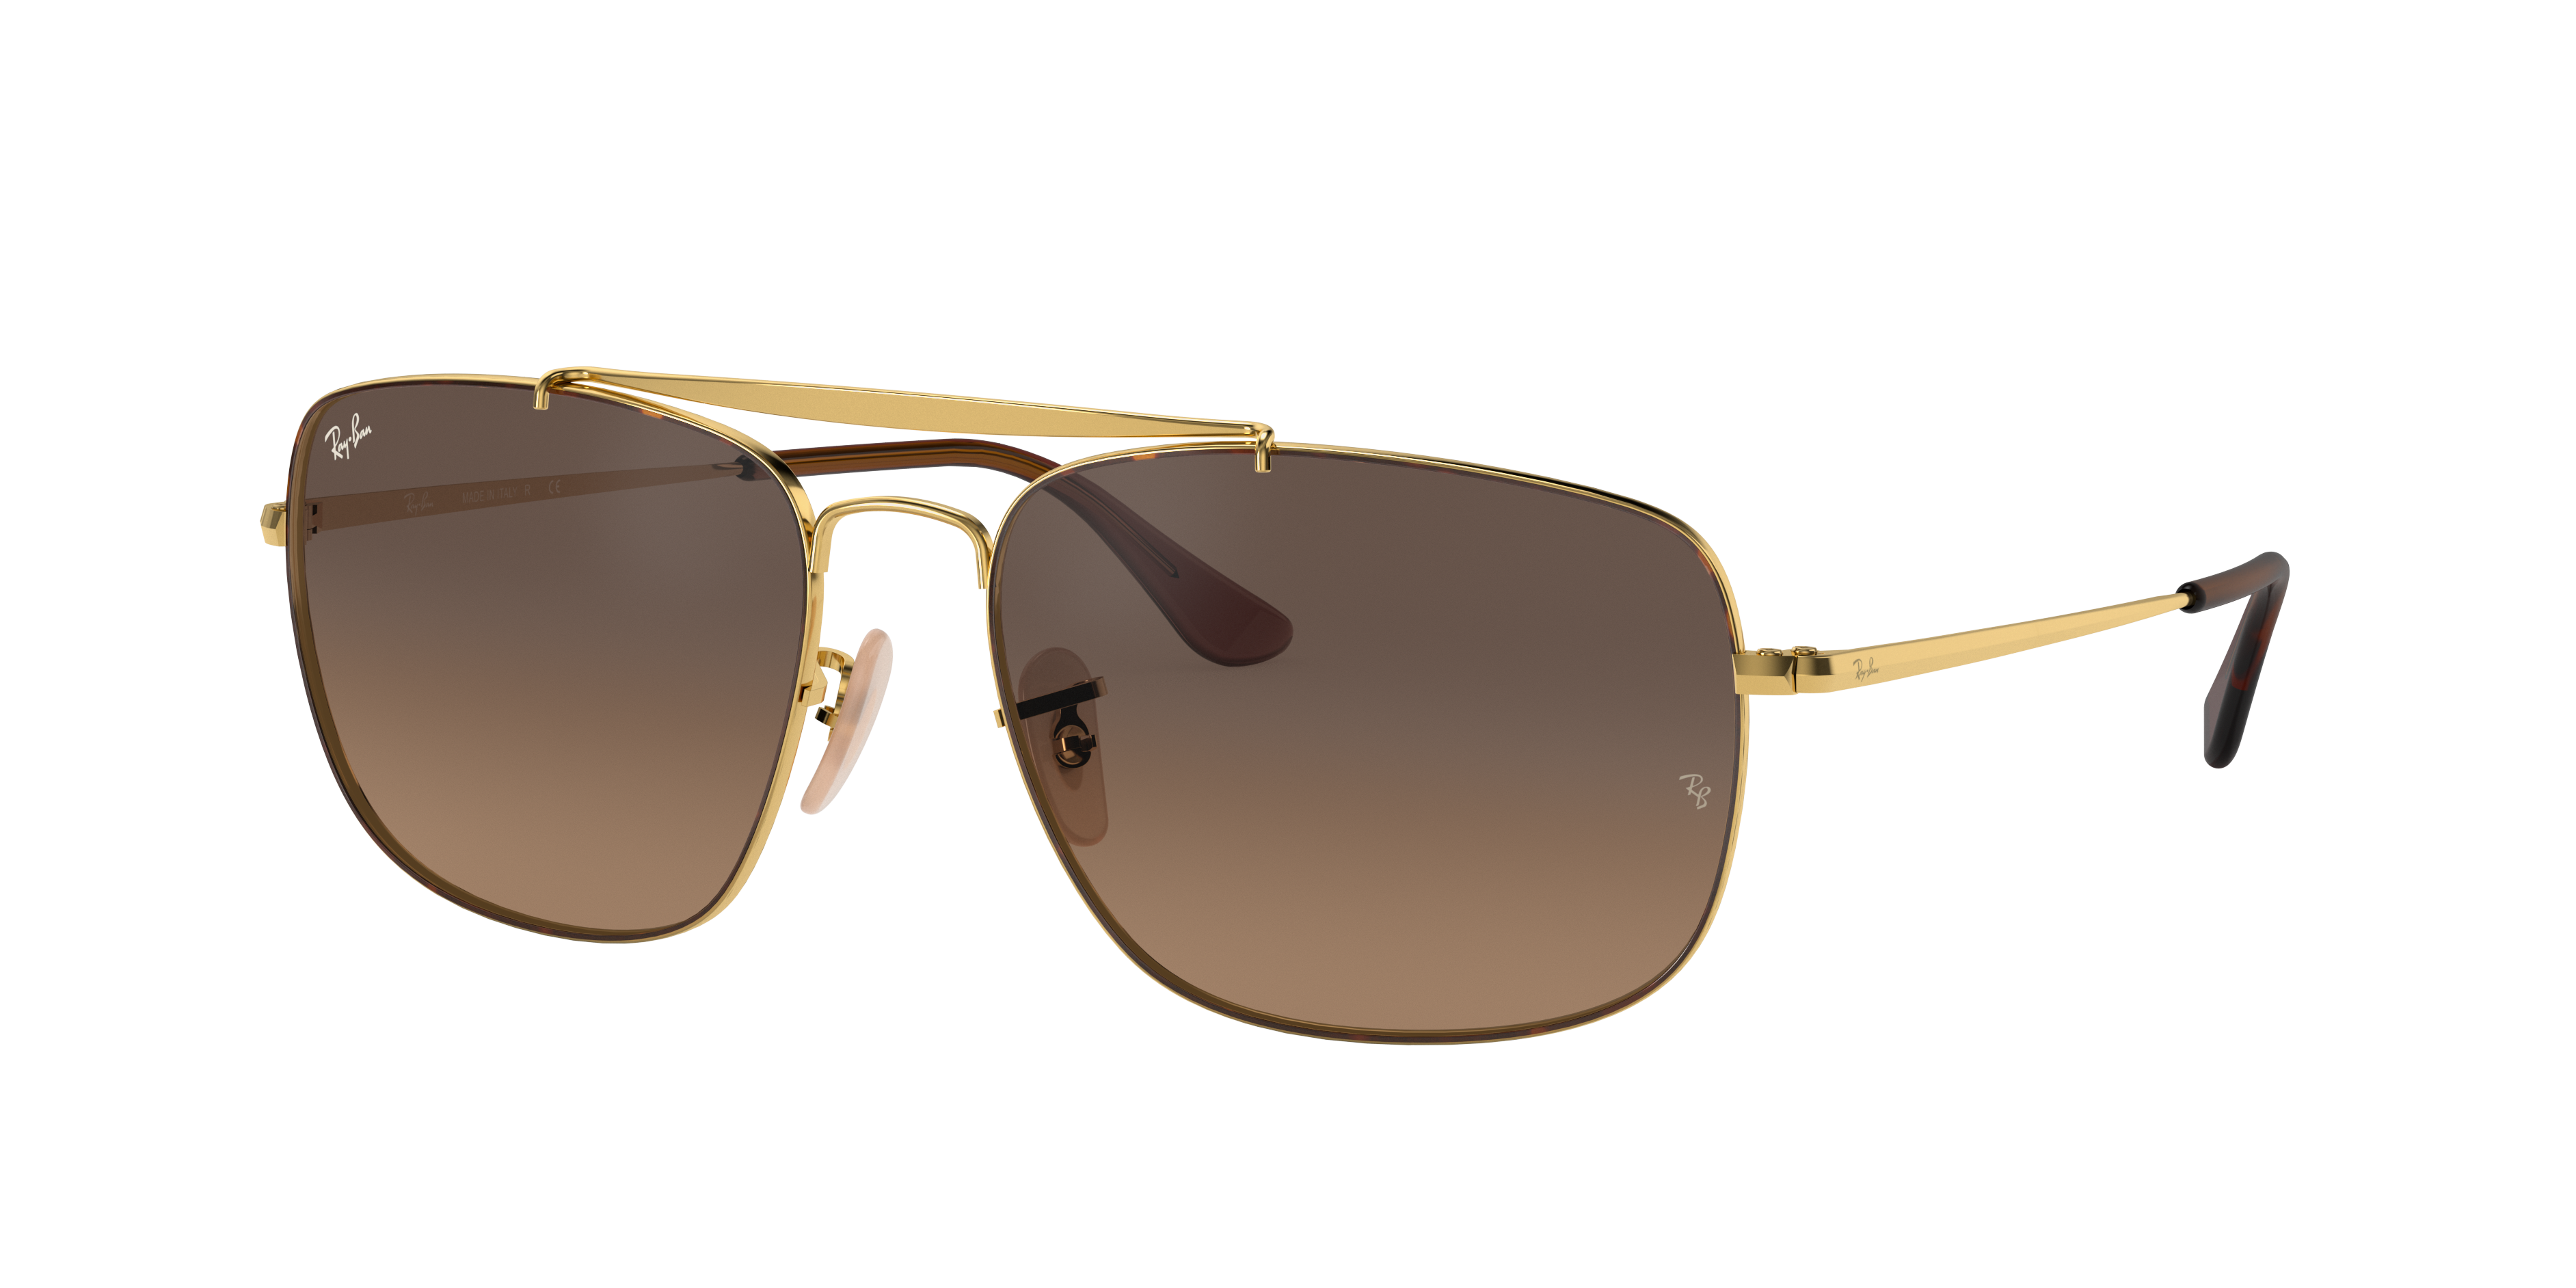 Ray-Ban Colonel Gold, Brown Lenses - RB3560